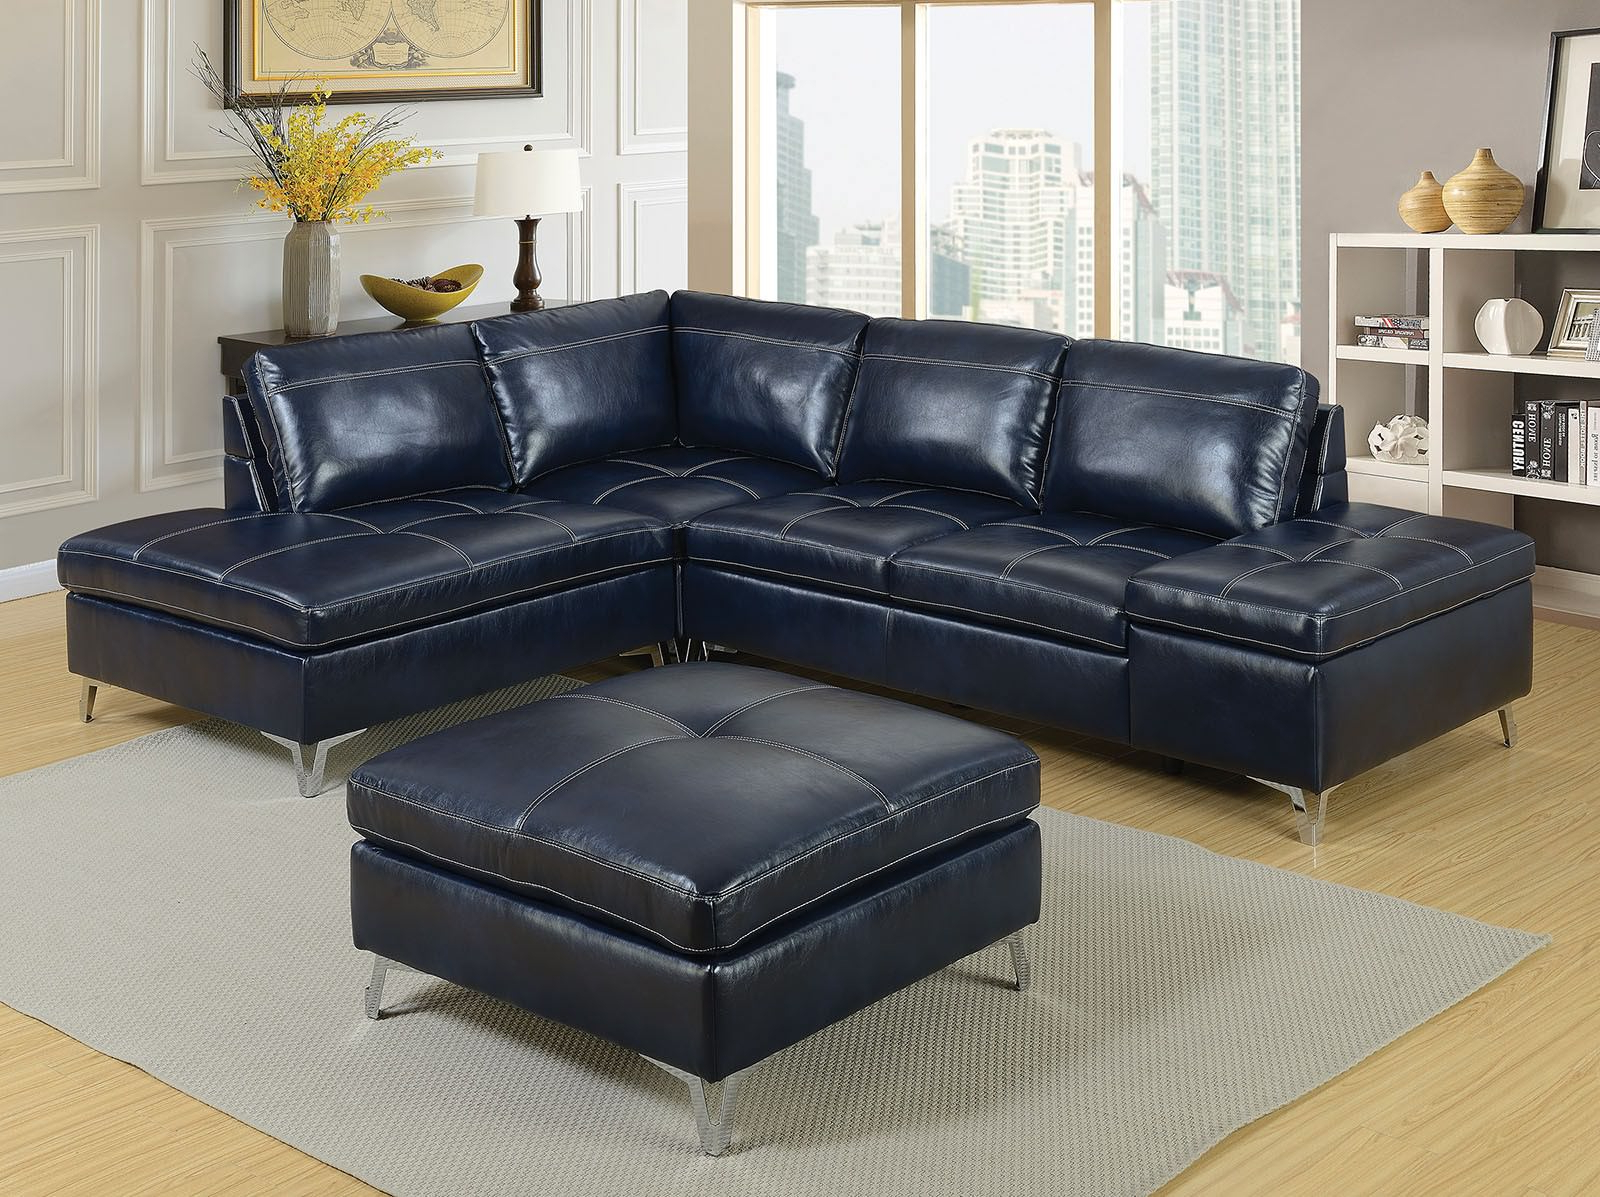 Preferred Tatum Dark Grey 2 Piece Sectionals With Raf Chaise Inside Leather Sectionals (View 13 of 20)